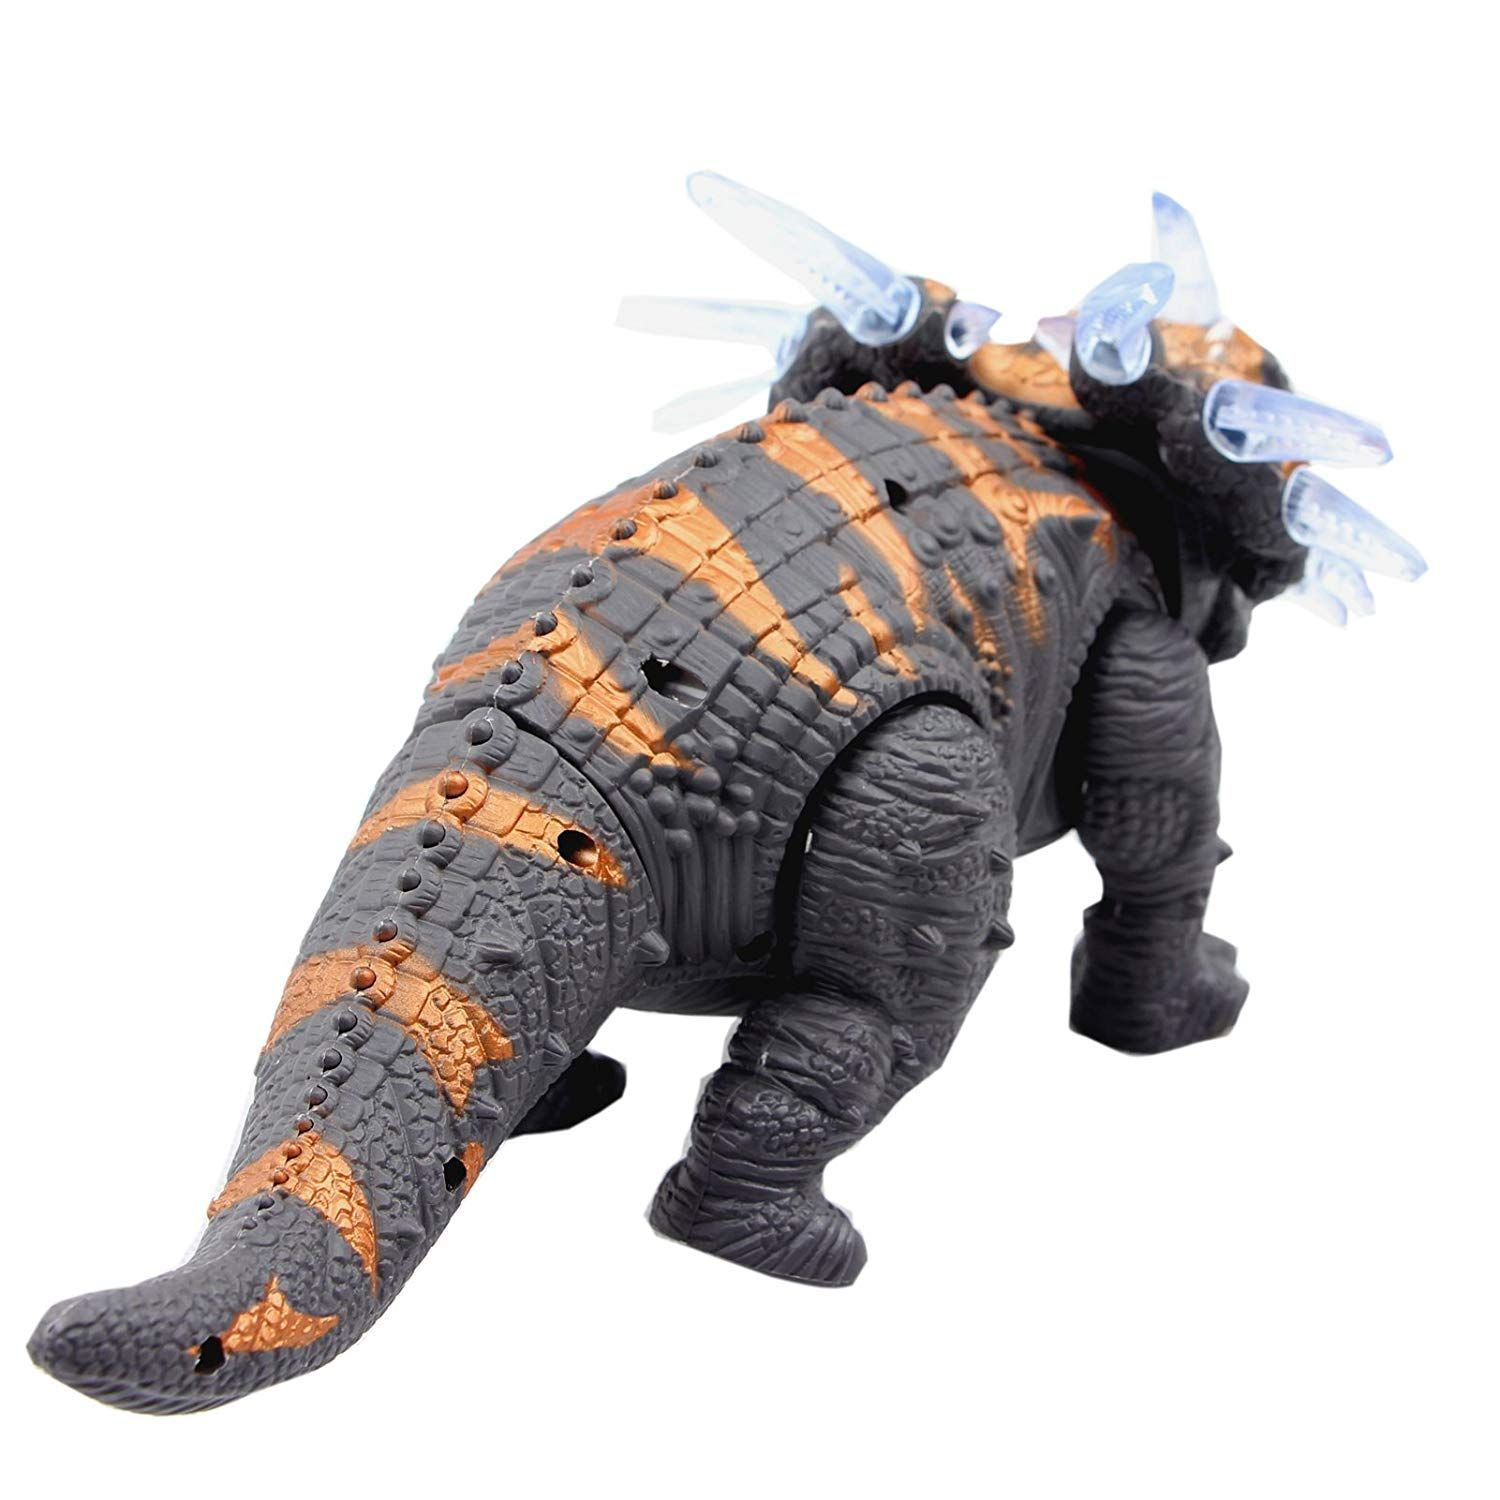 Walking Triceratops Dinosaur Toy Figure with Many Lights /& Loud Roar Sounds New